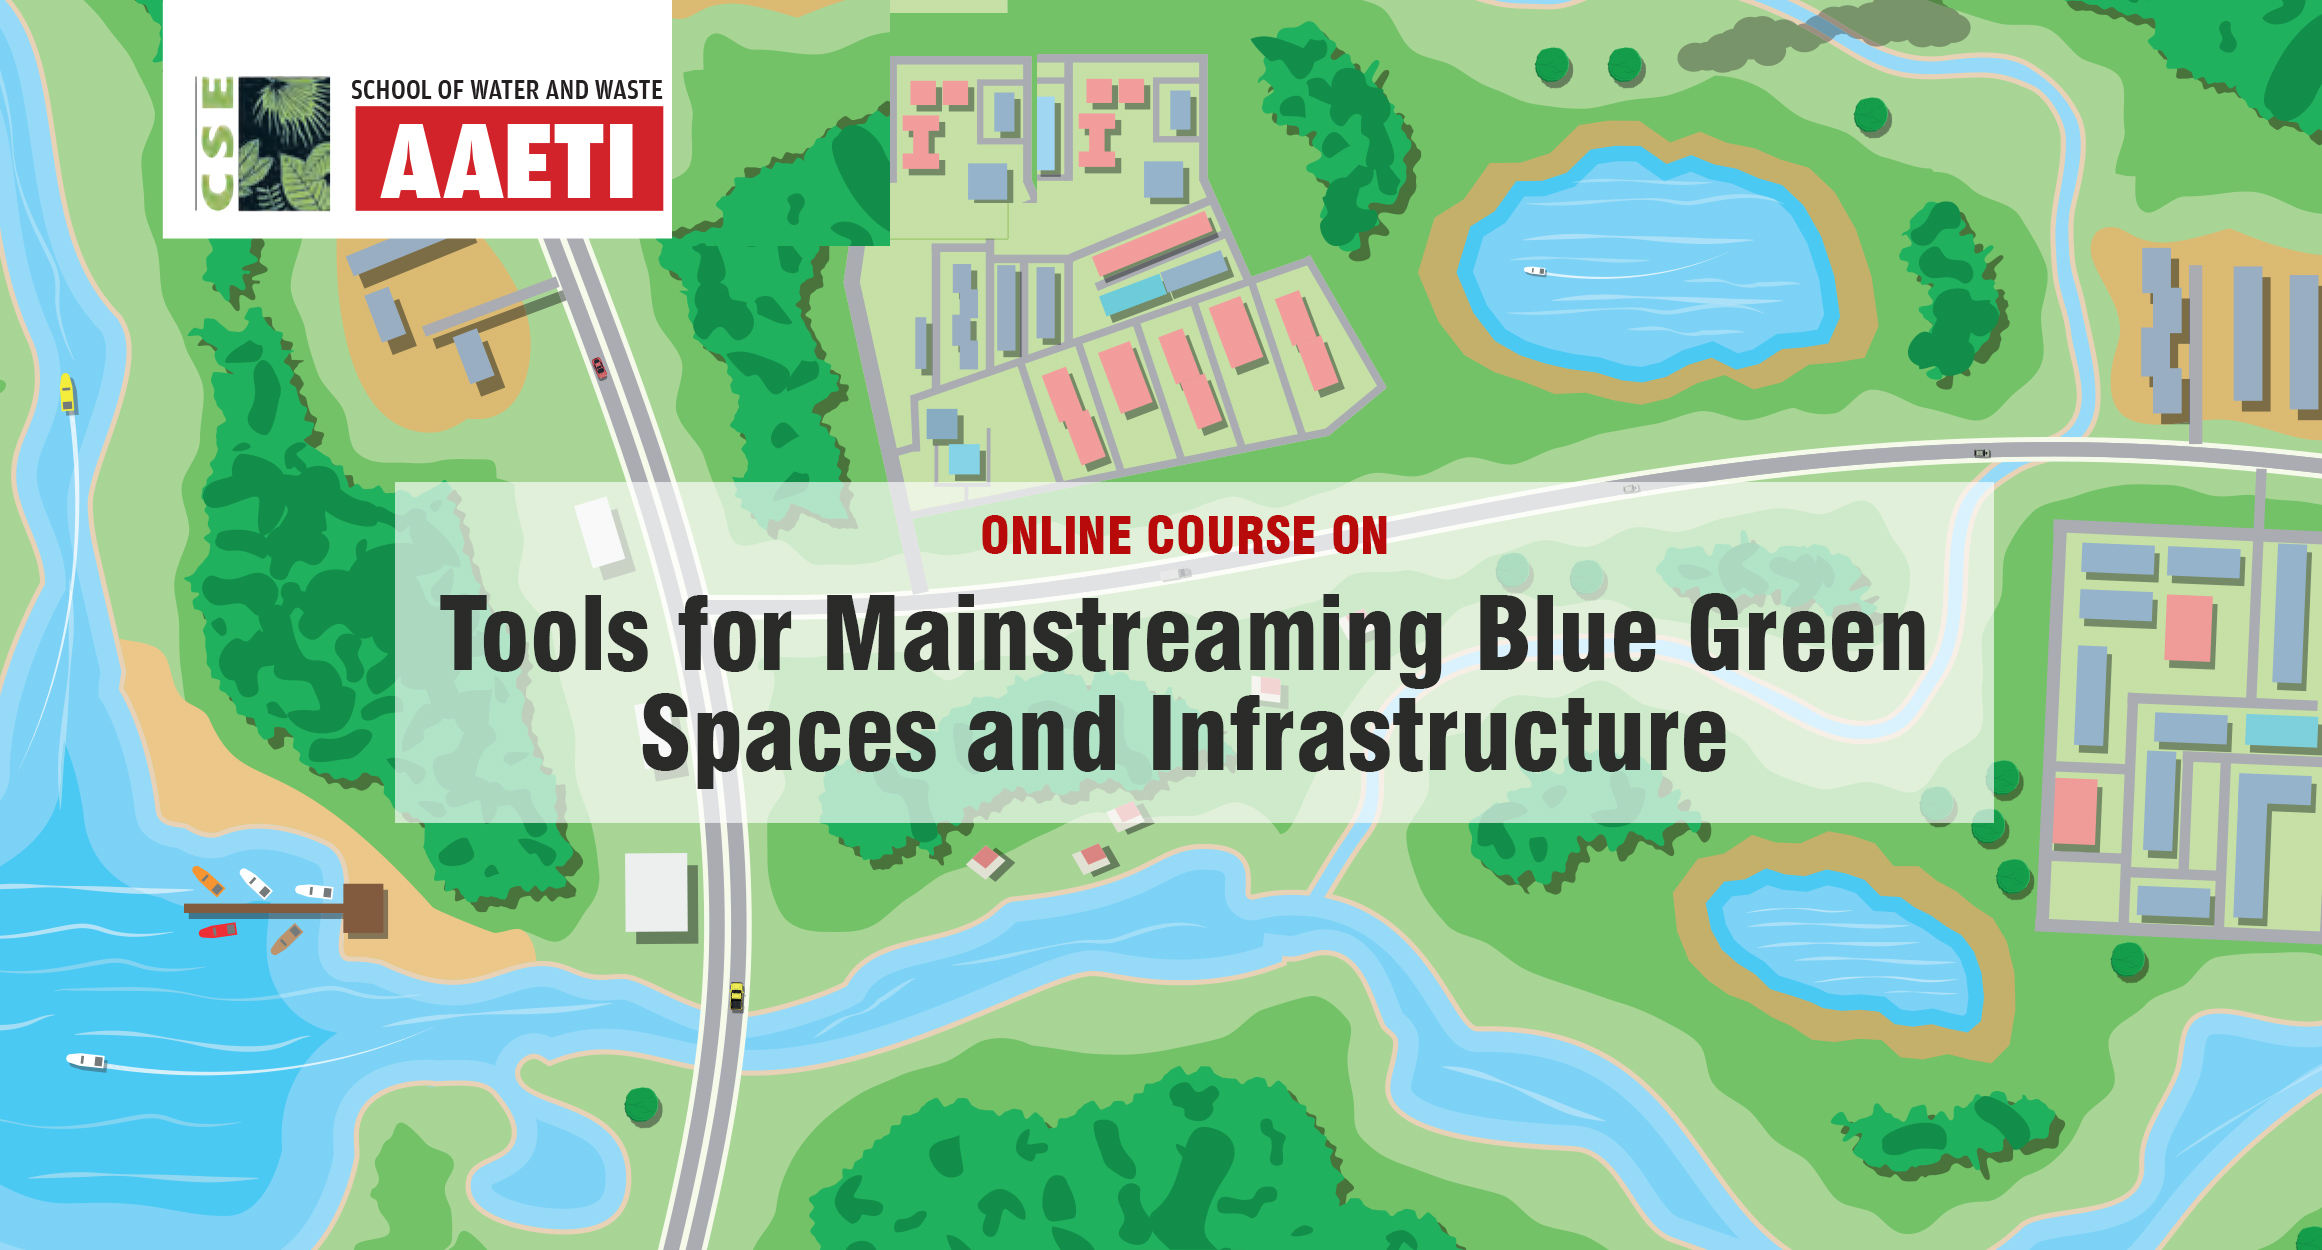 Online Training Programme on Tools for Mainstreaming Blue Green Spaces and Infrastructure